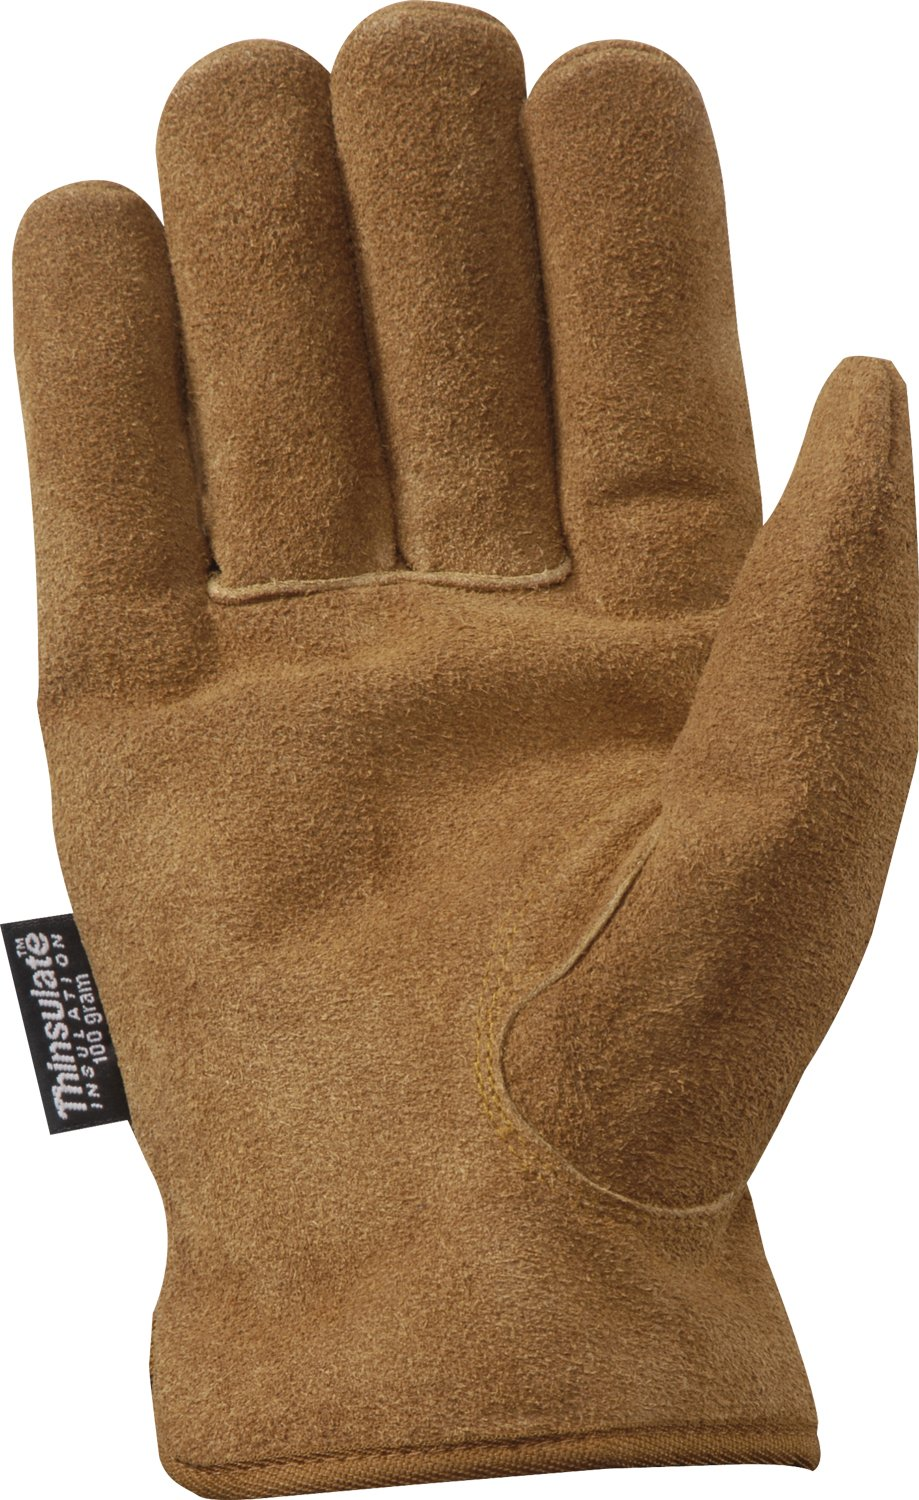 Insulated leather work gloves amazon - Wells Lamont Leather Work Gloves With 100 Gram Thinsulate Insulation Split Cowhide Large 1063l Amazon Com